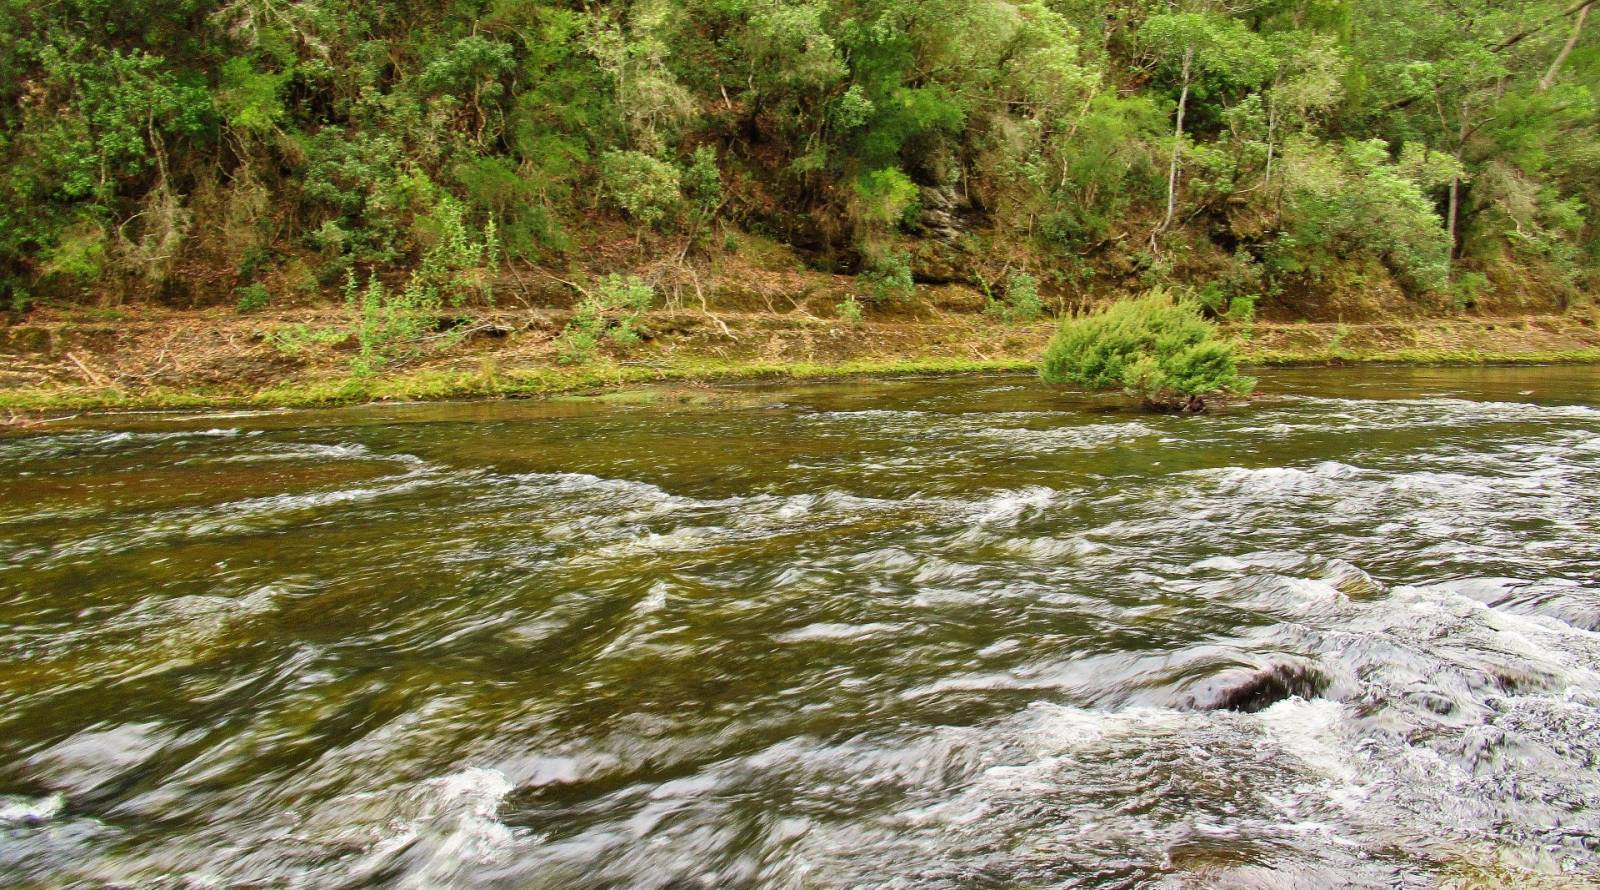 The first trout was taken of the flat water behing the bush..JPG